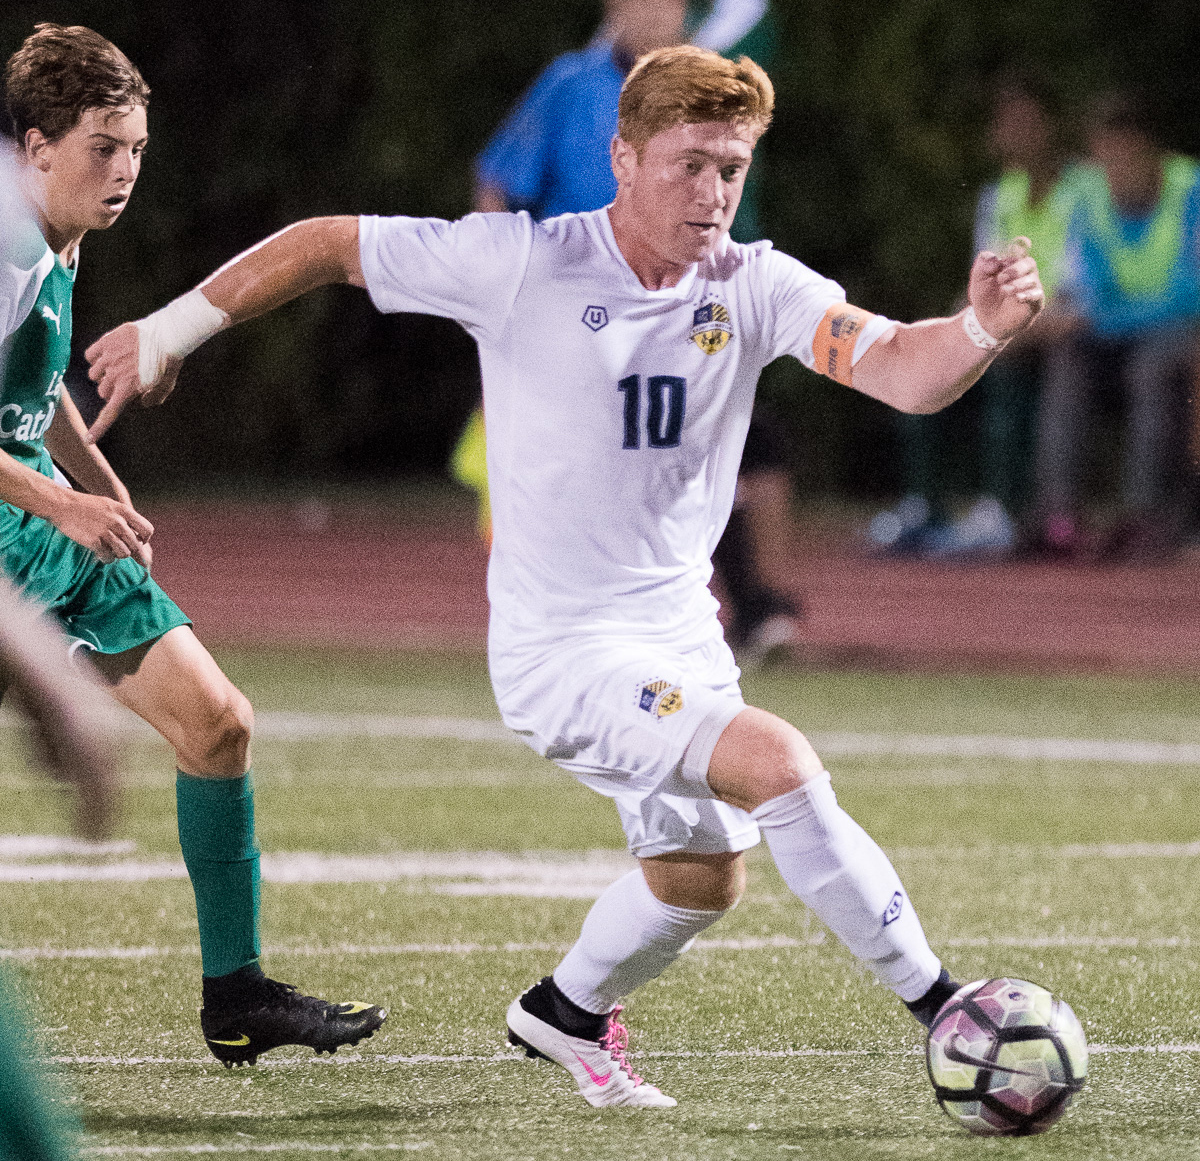 Stephen Milhoan is among the top soccer players in the nation (Photo: St. Ignatius)